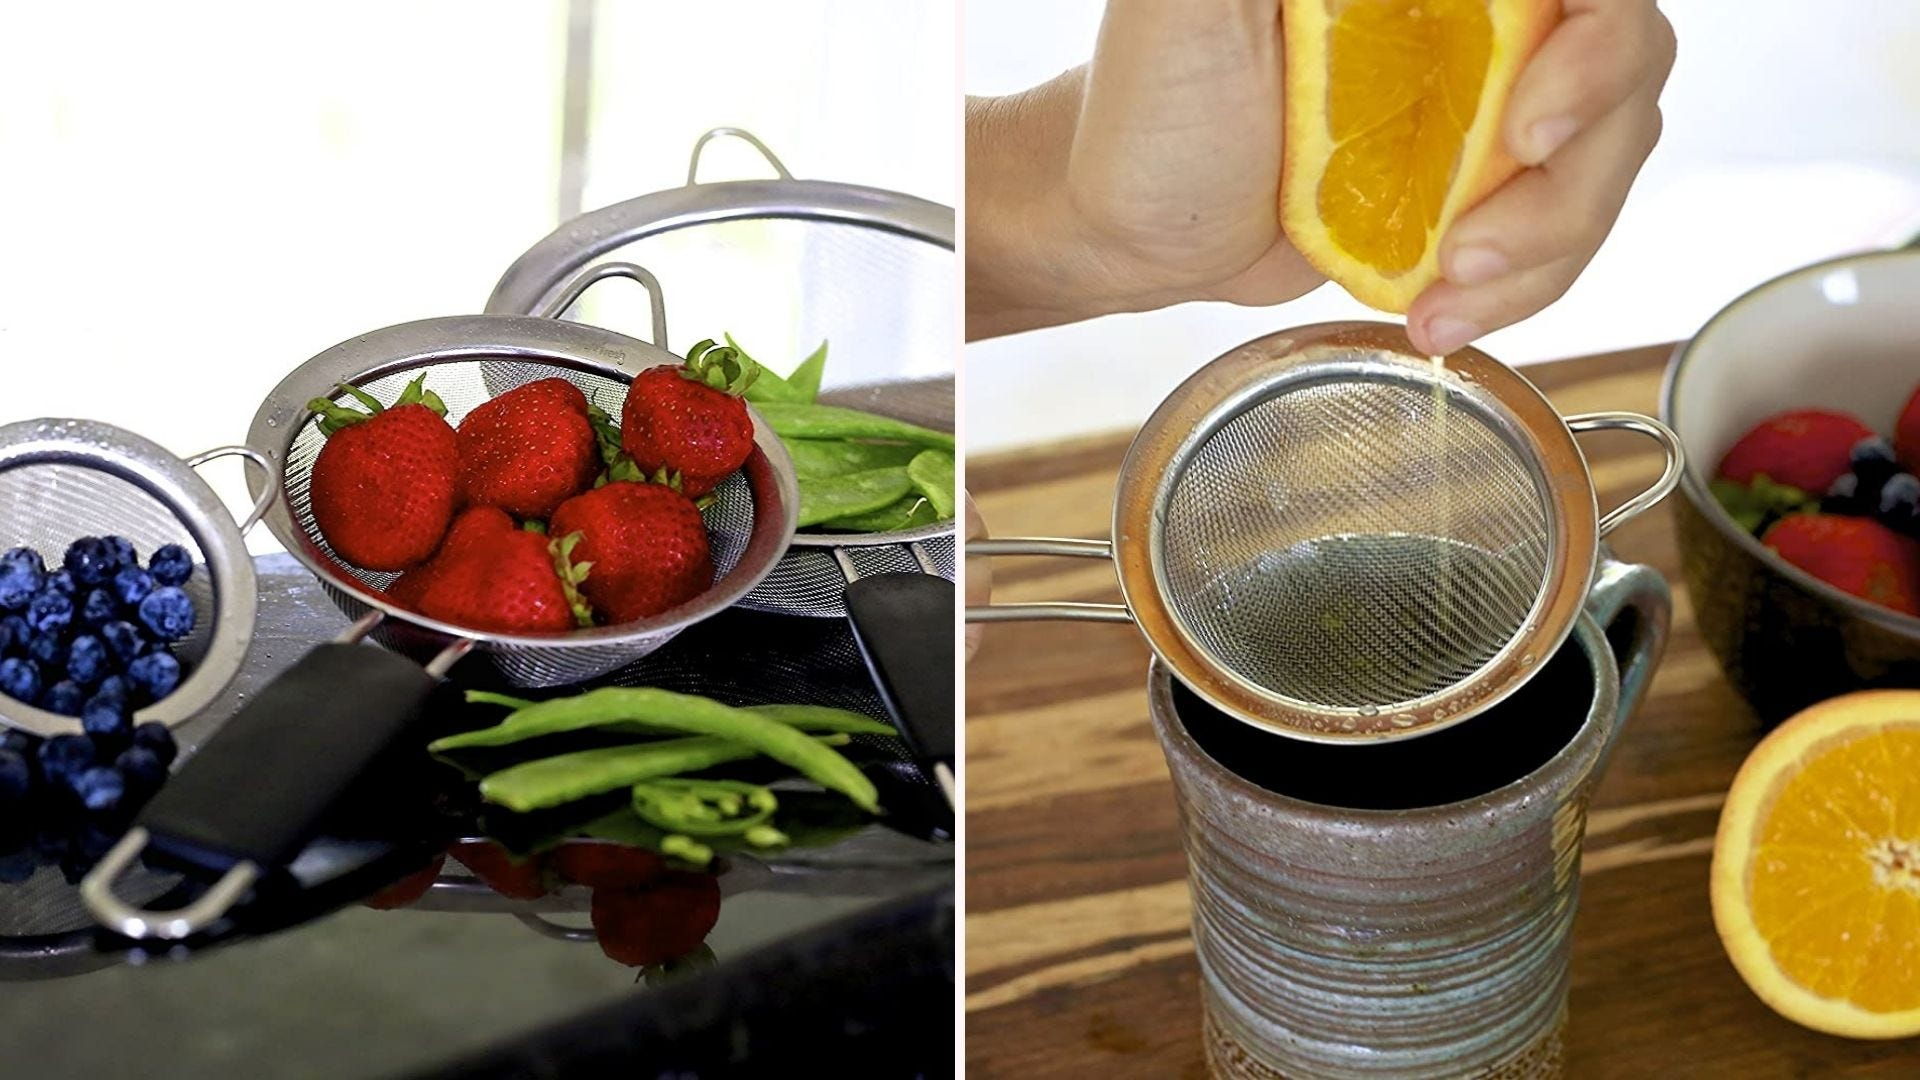 Two images of a mini fine mesh strainer, filled with fresh fruit. The right image is of someone squeezing an orange over the strainer to catch the seeds.